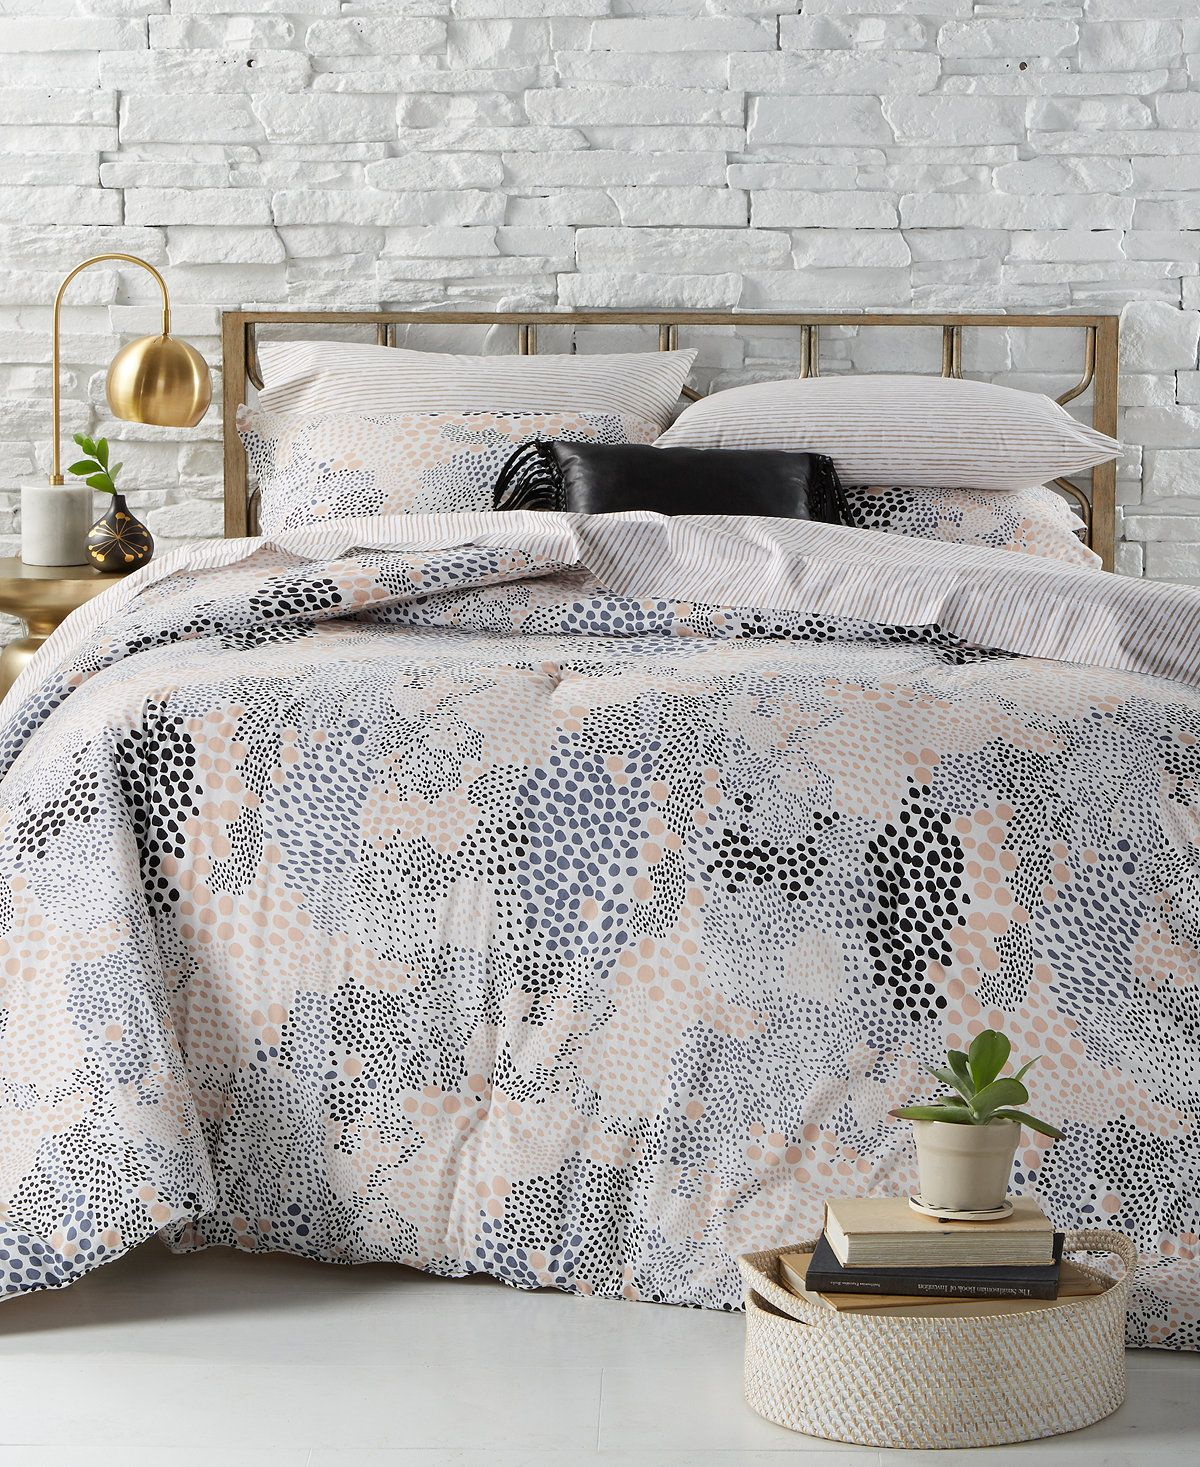 Bcbgeneration Pebble Noir Bedding Collection Bedding Collections